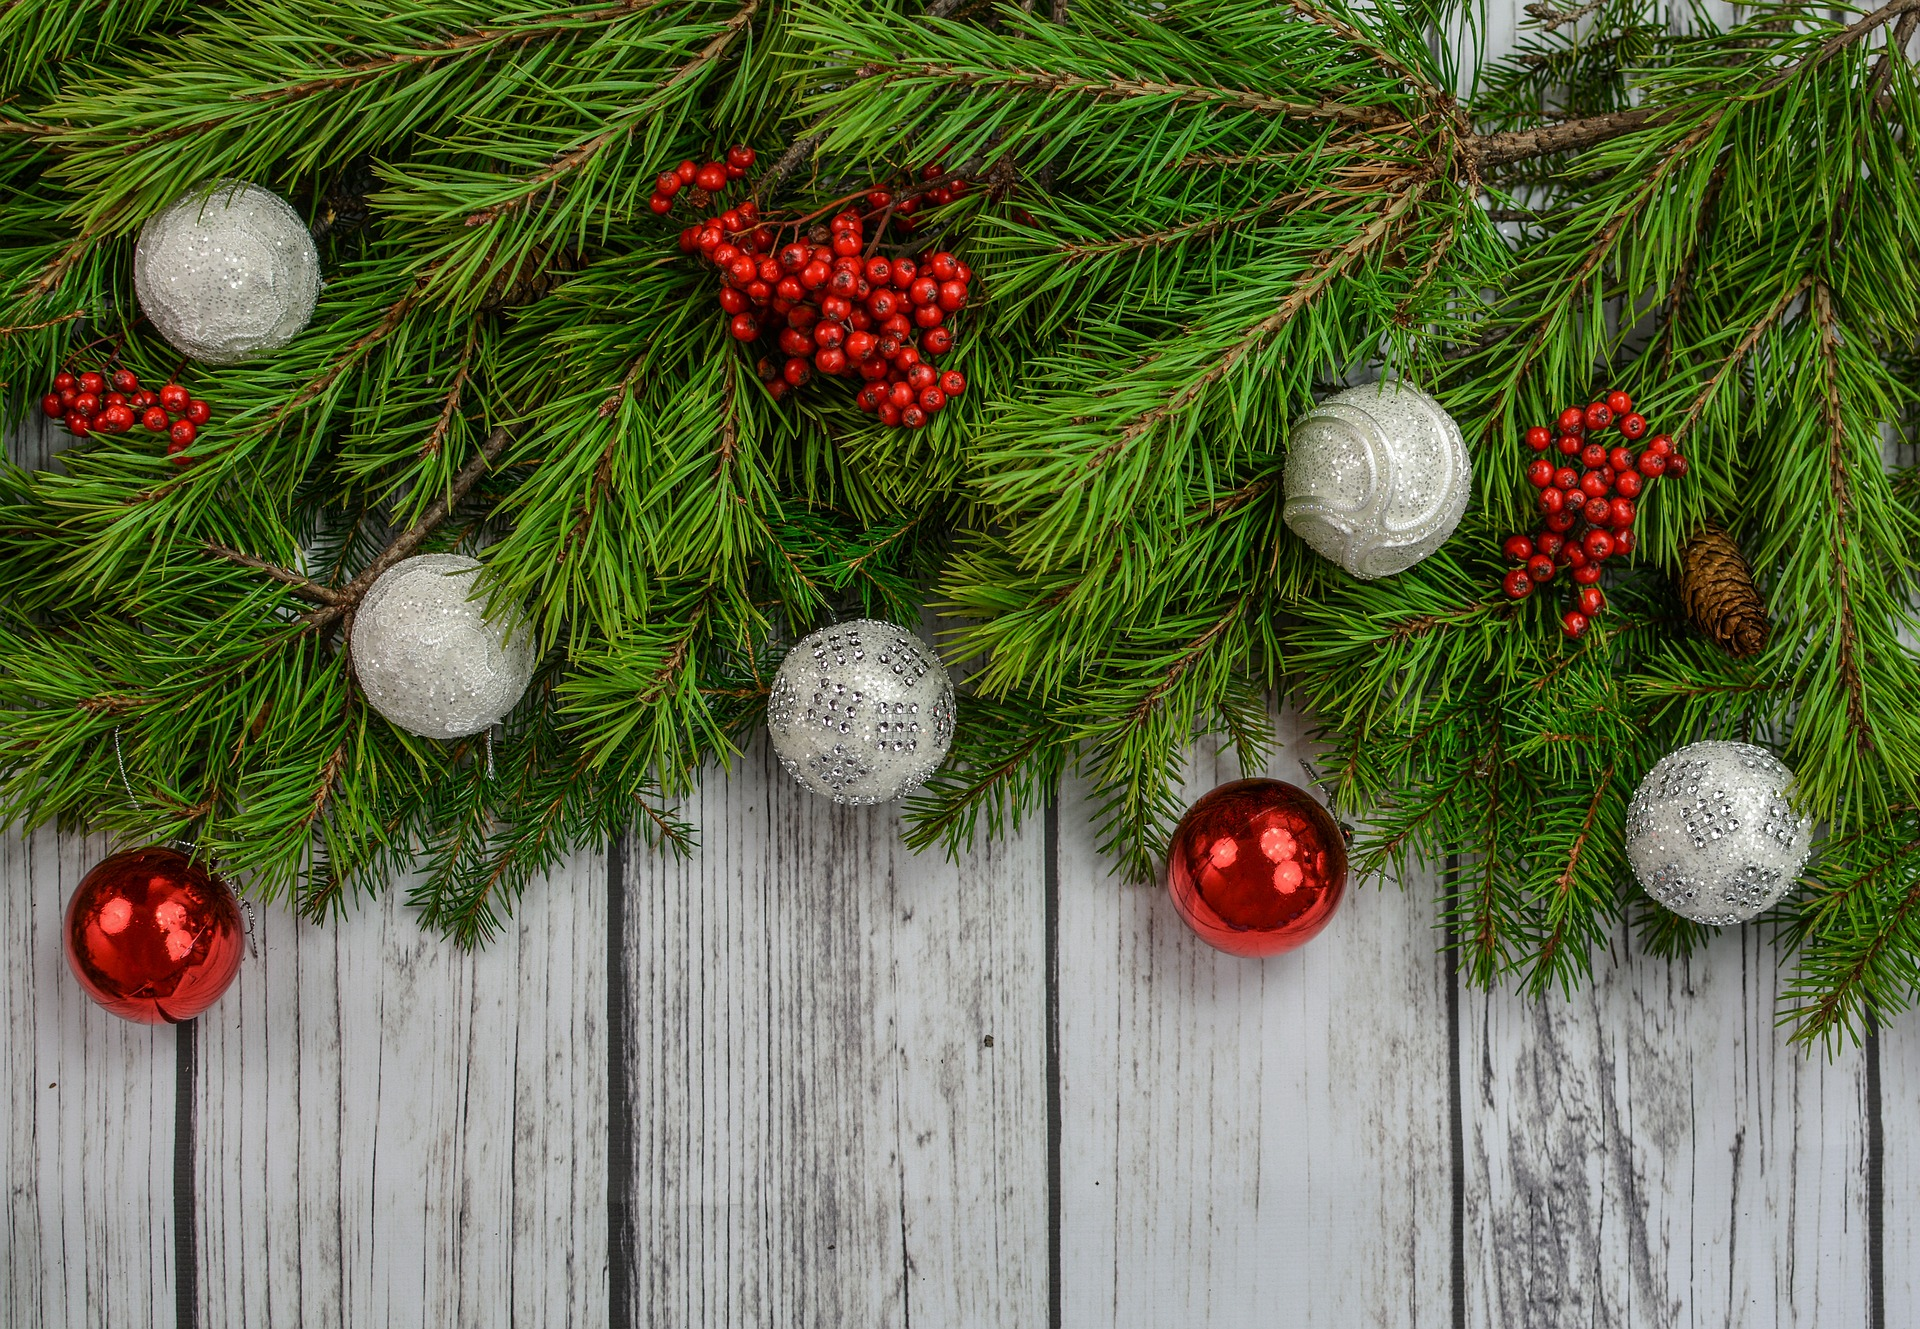 Happy Holidays from CECS, and best wishes for a Happy New Year!